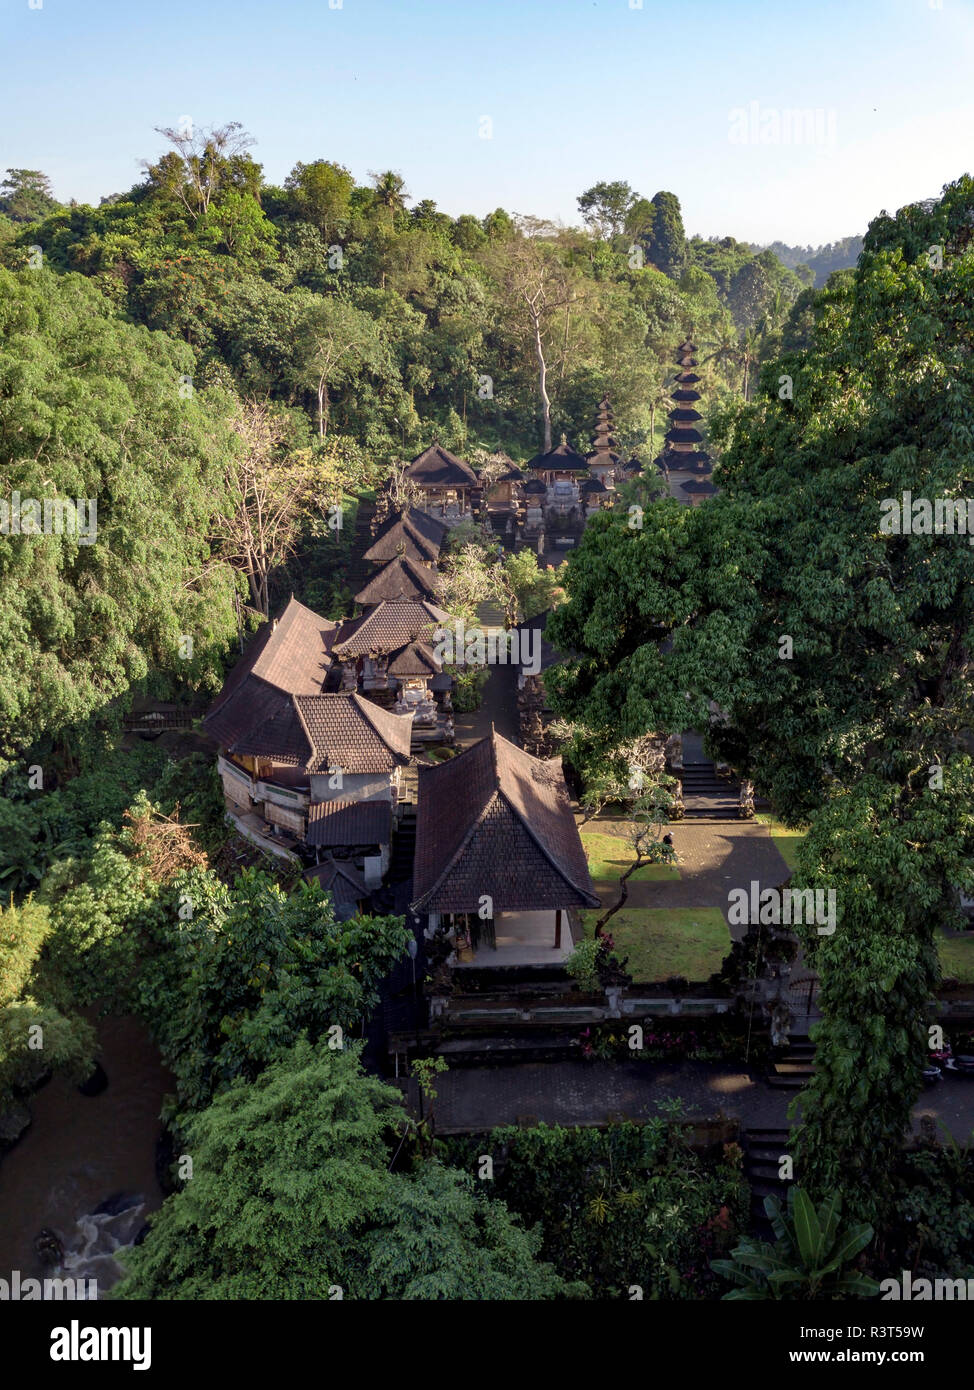 Indonesia, Bali, Ubud, Aerial view of Balinese temple - Stock Image